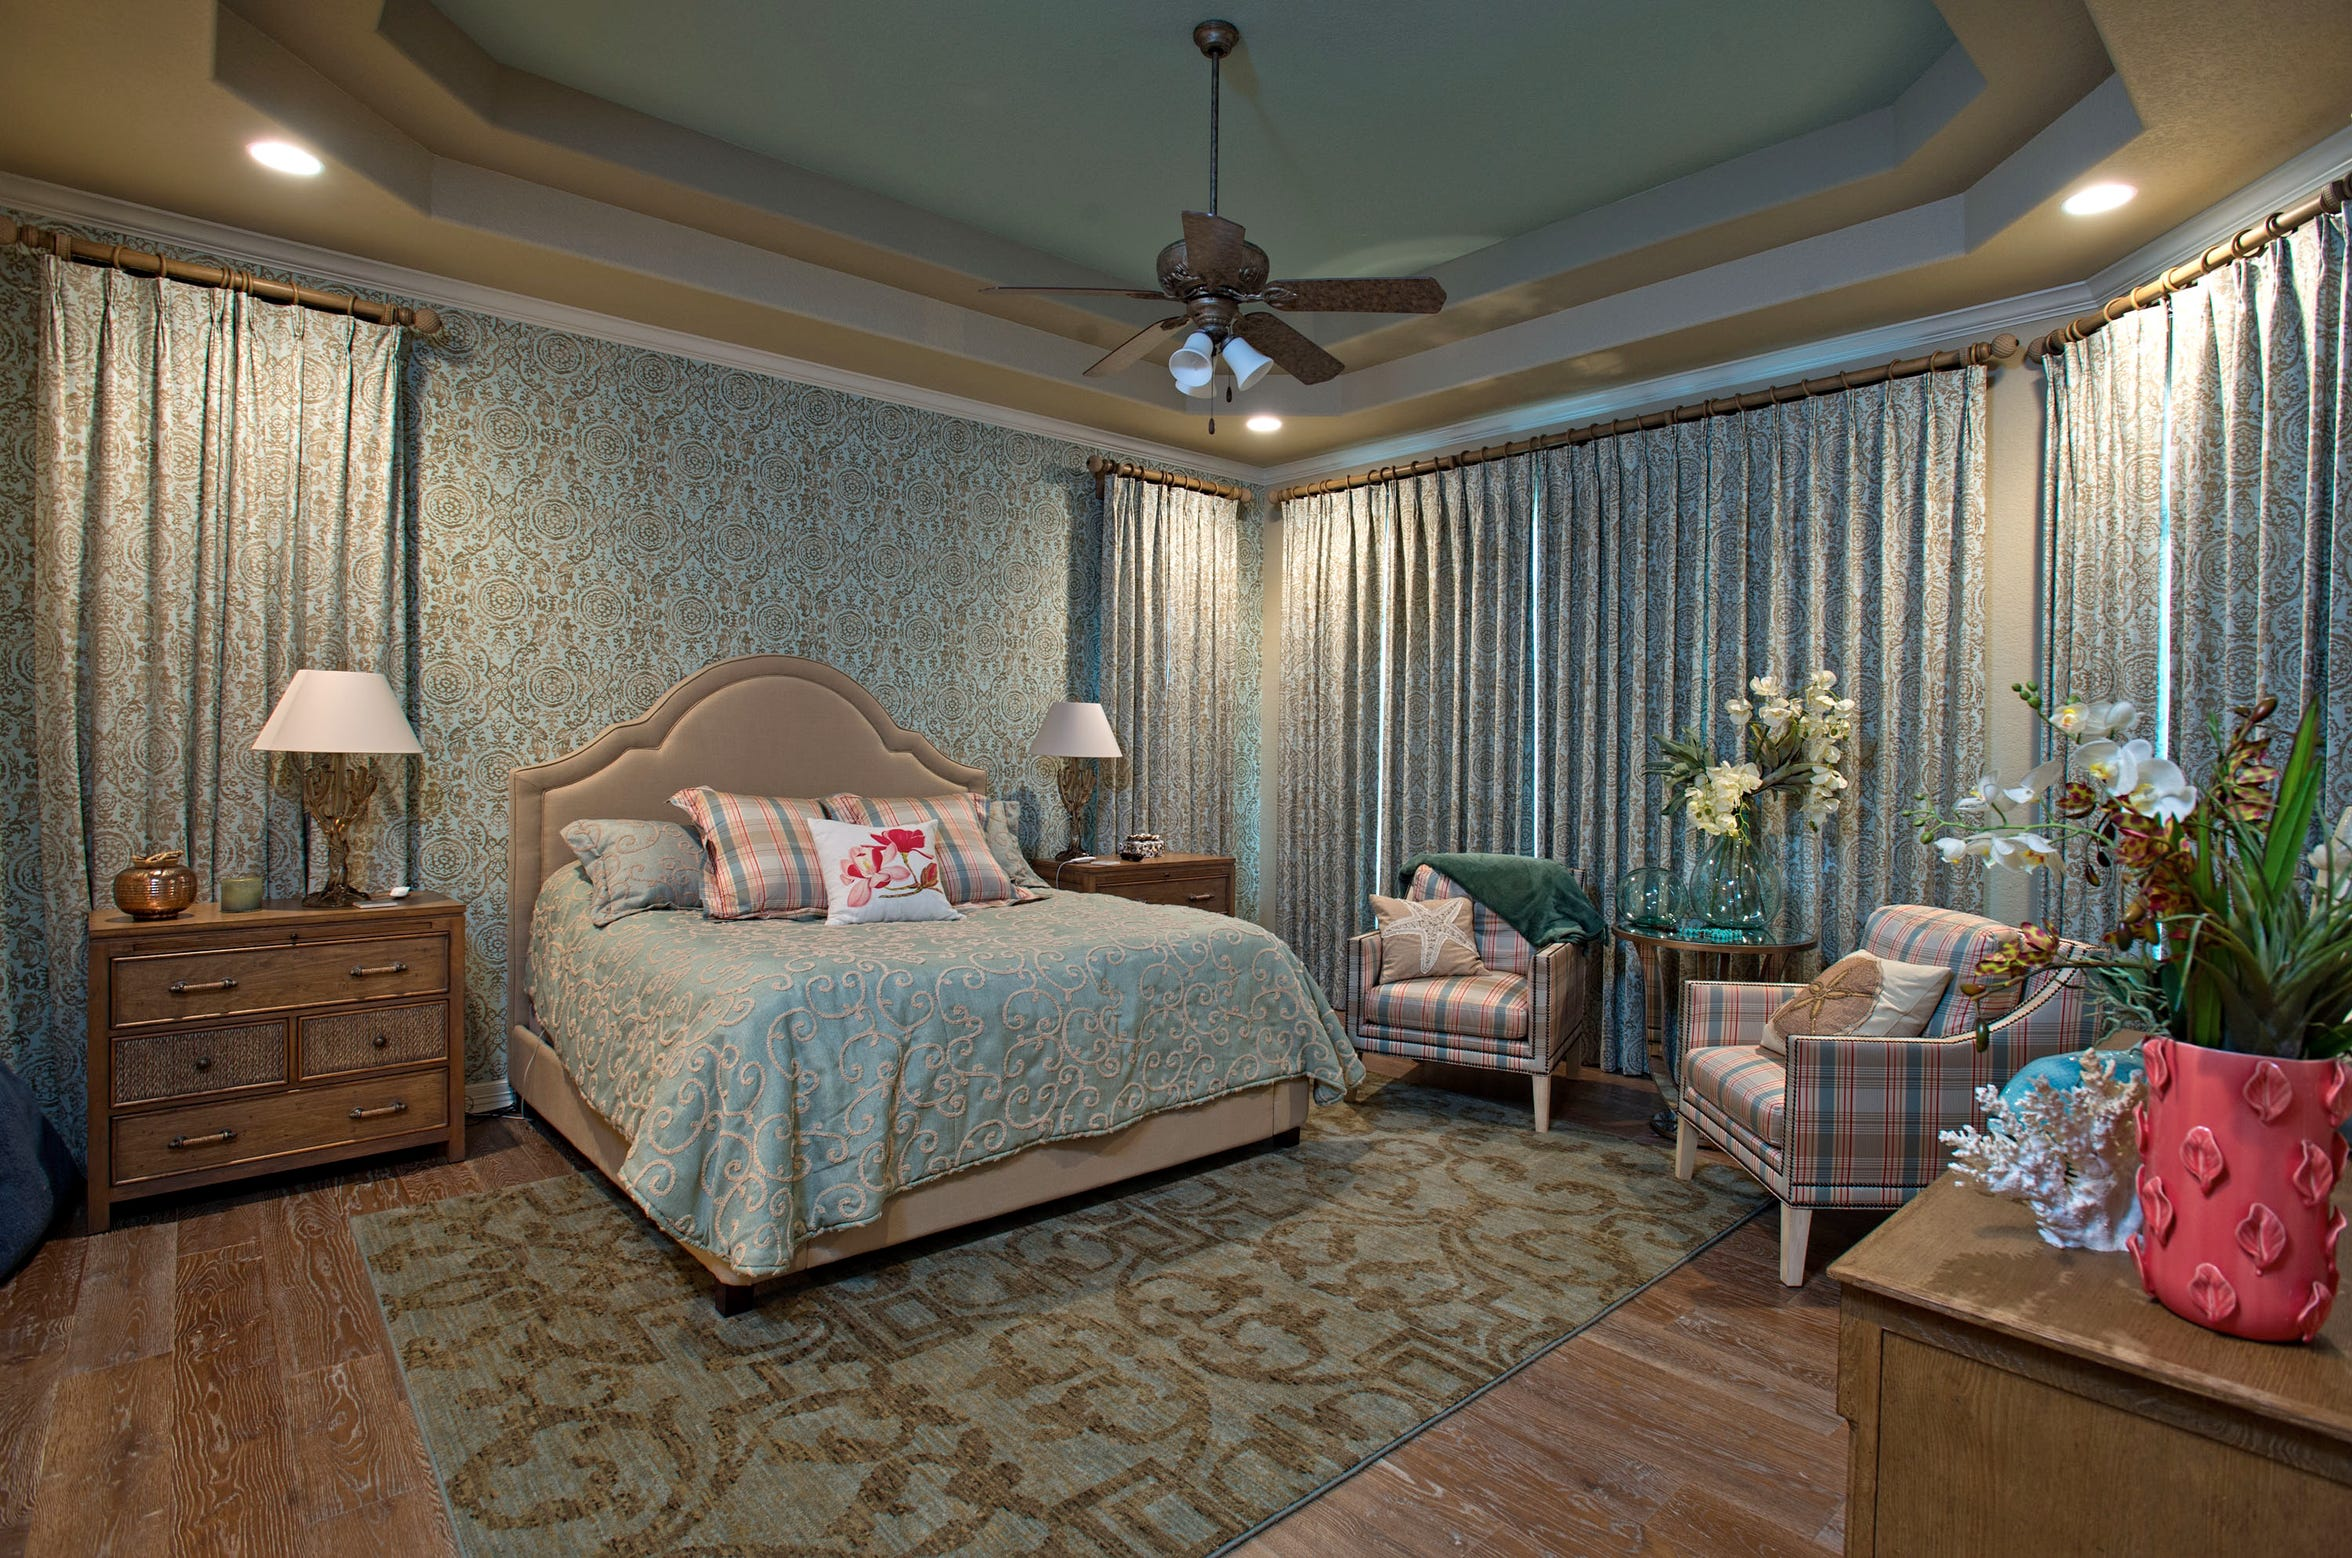 The dreamy ultra relaxing master bedroom has luxurious drapes and restful tones for a great night's sleep.